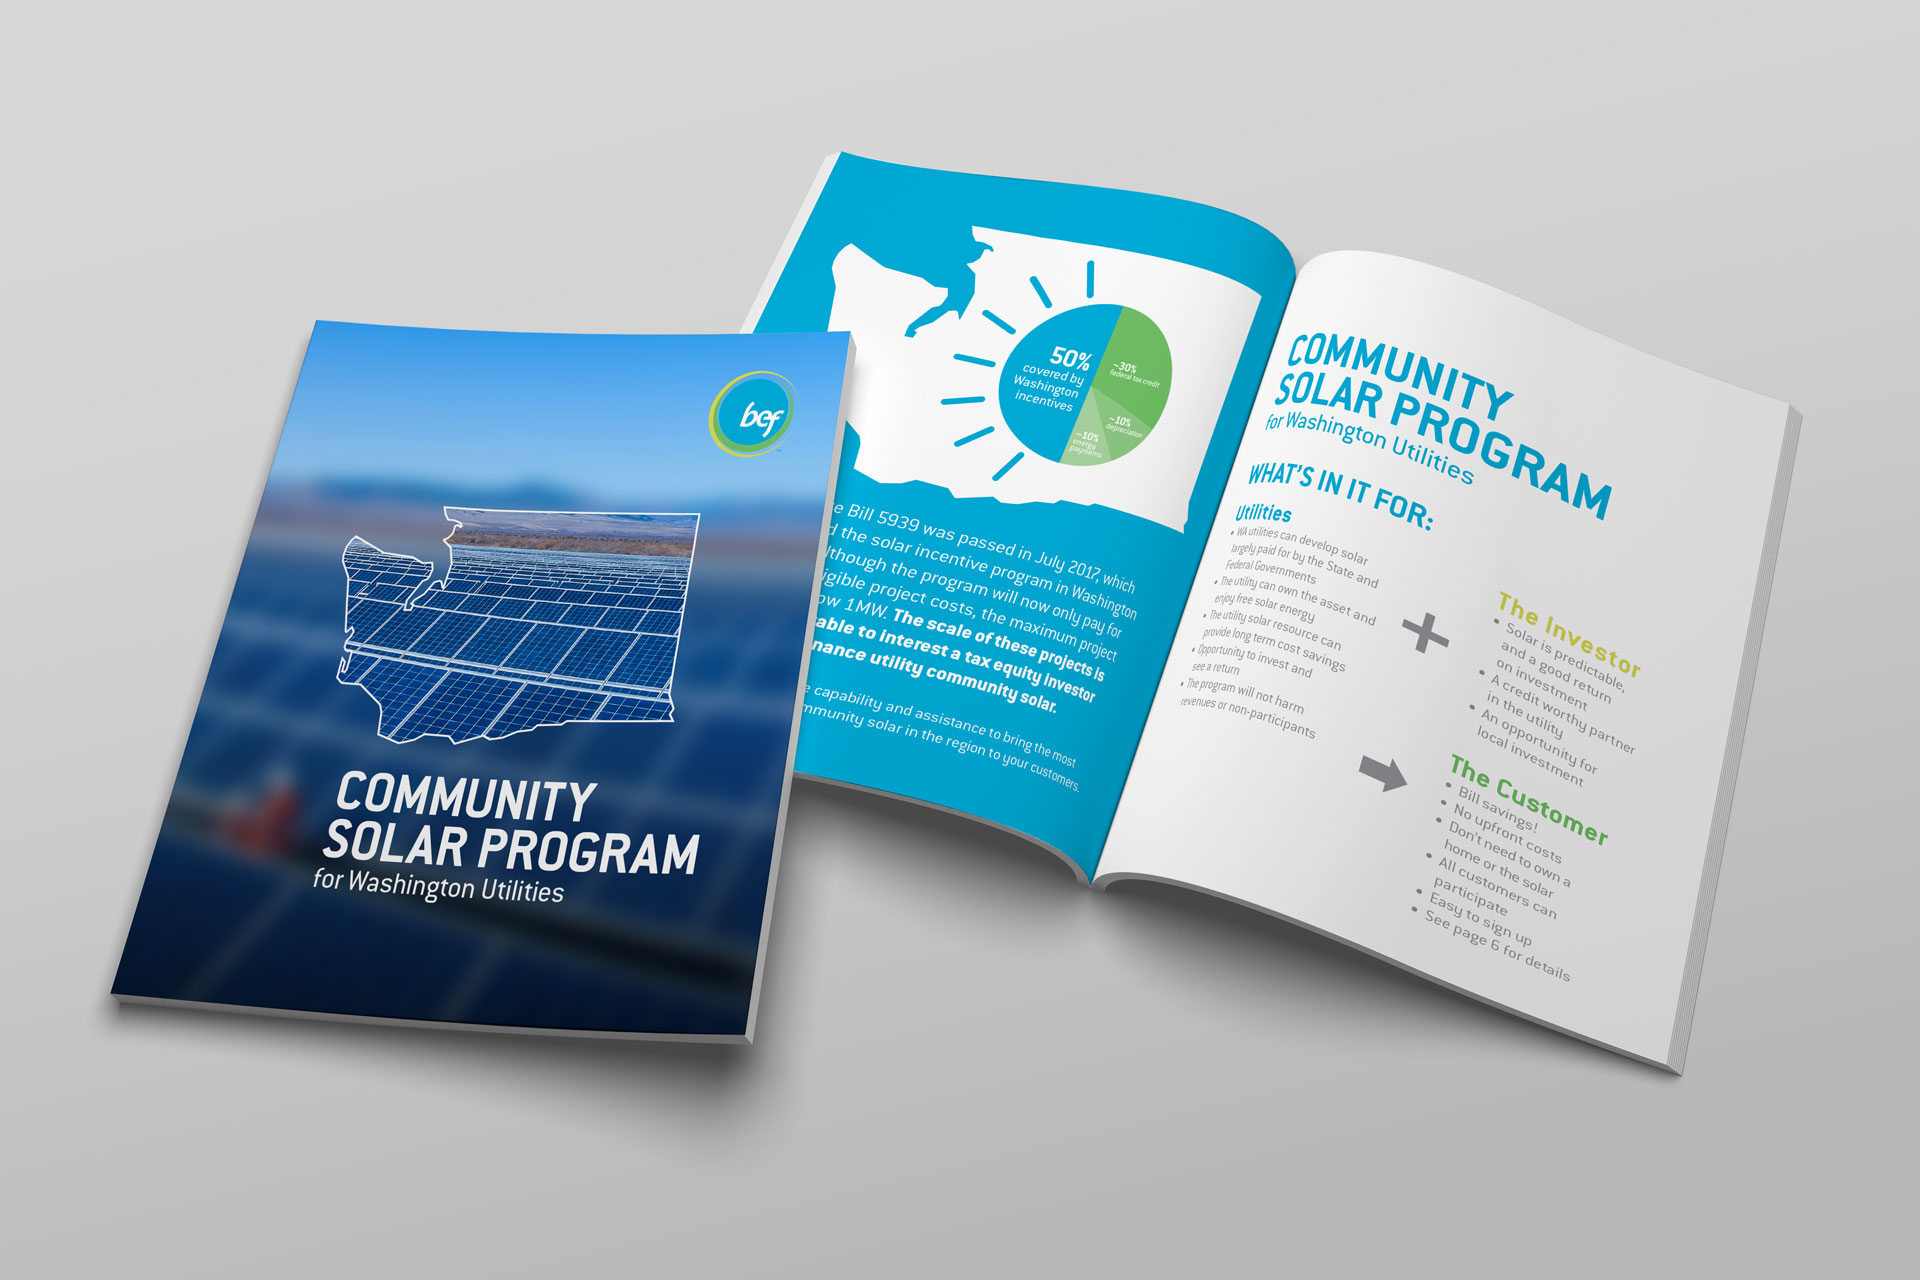 BEF_WA-Community-Solar_booklet-cover+spread.jpg